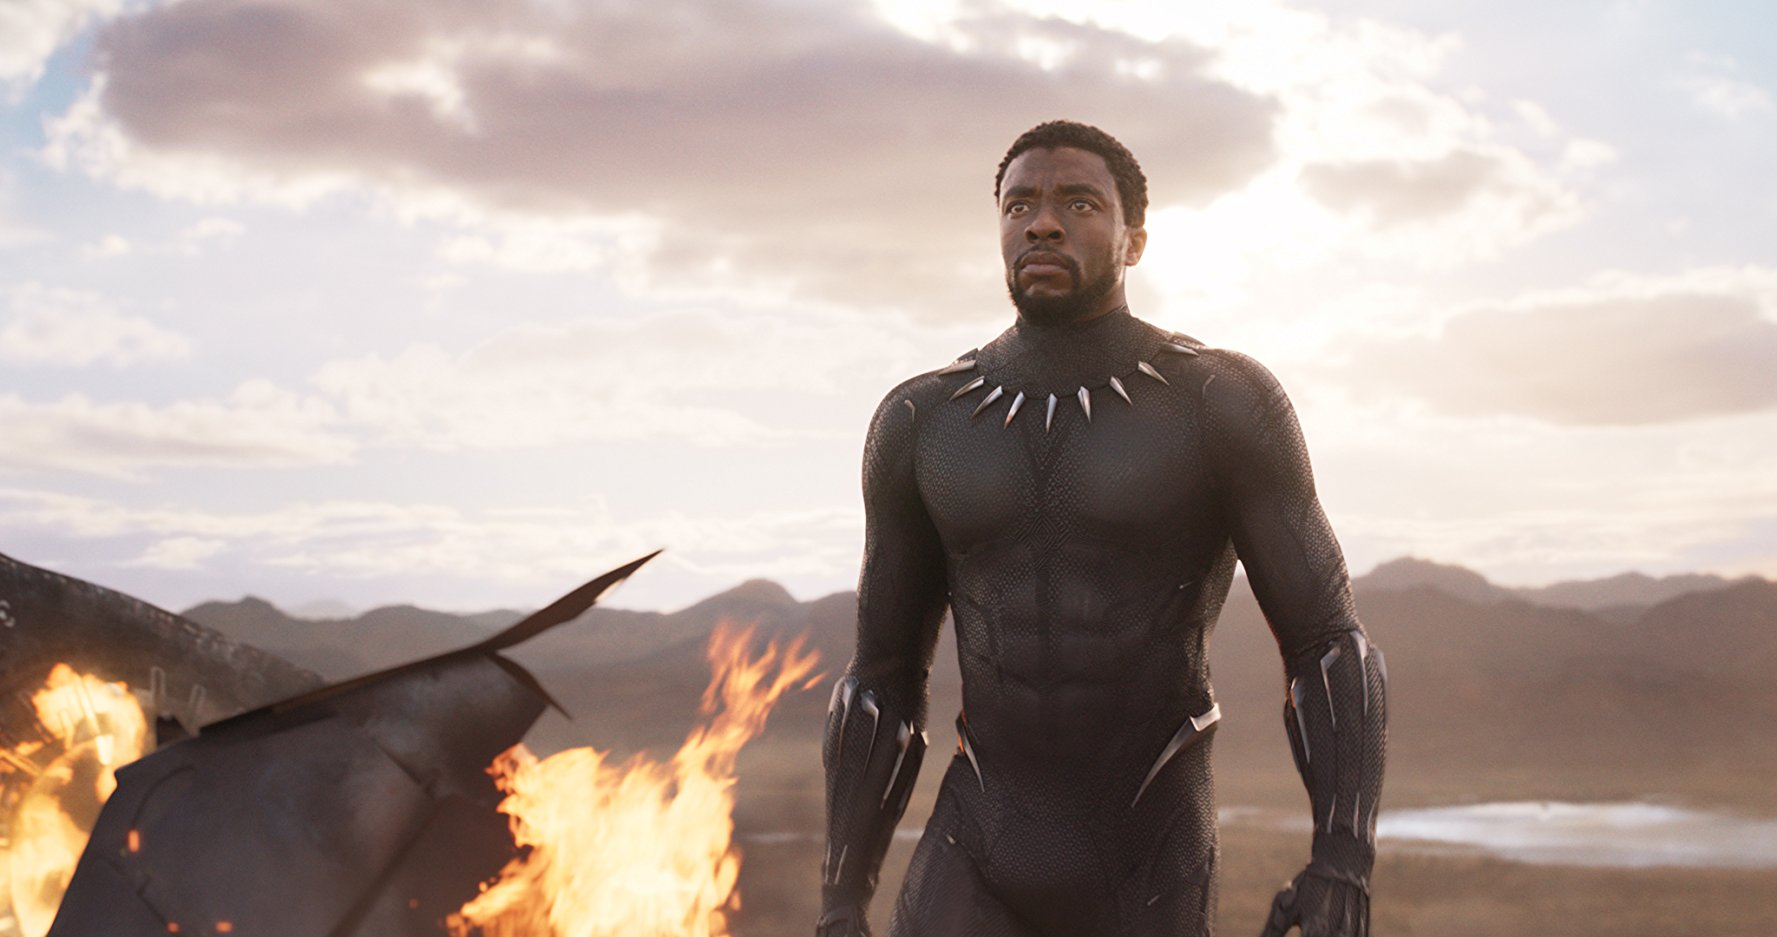 Chadwick Boseman is seen in the new movie, Black Panther